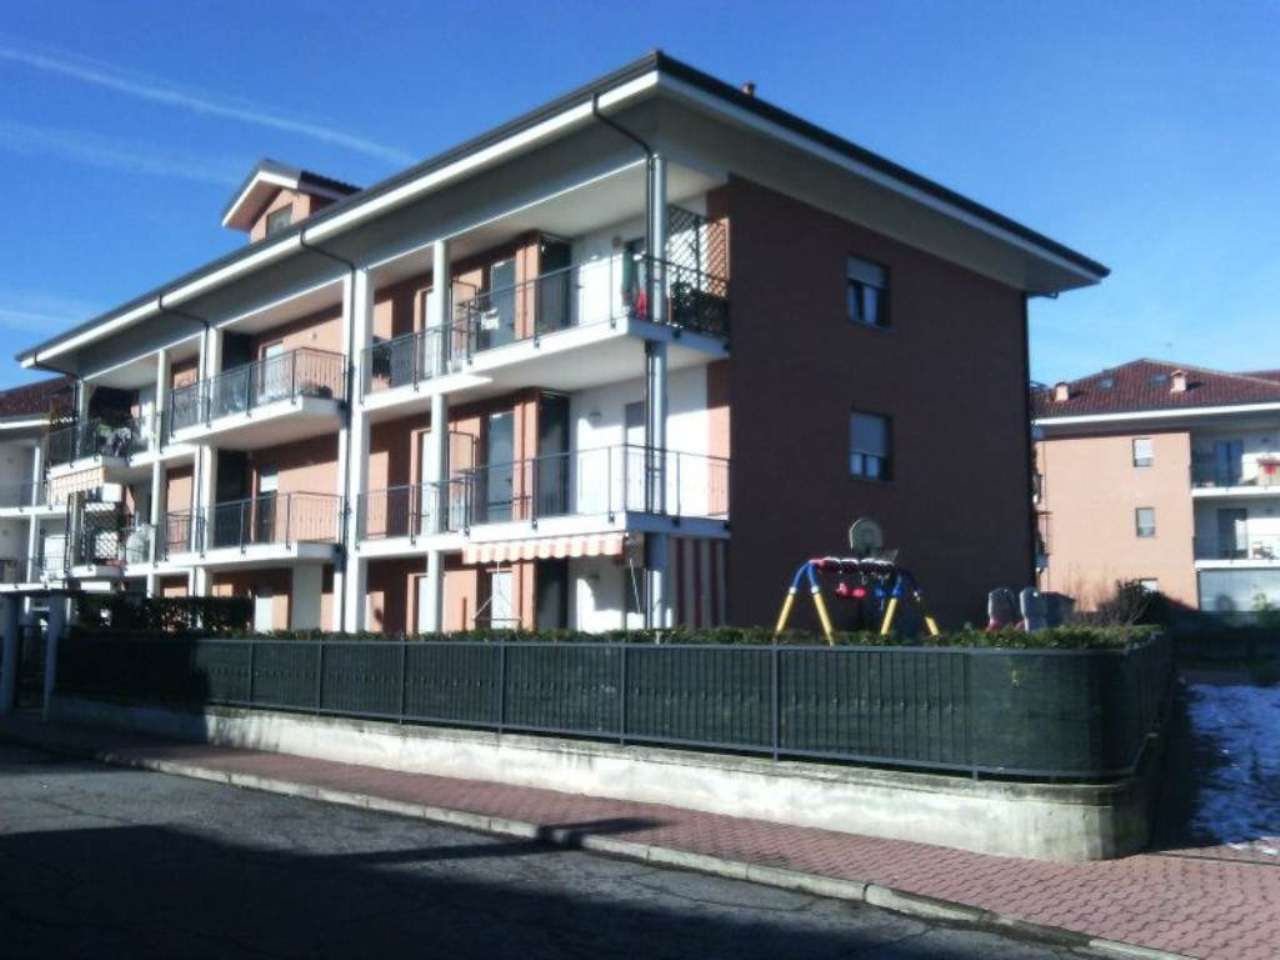 Martinetto immobiliare a san francesco al campo casa for Affitto cirie arredato